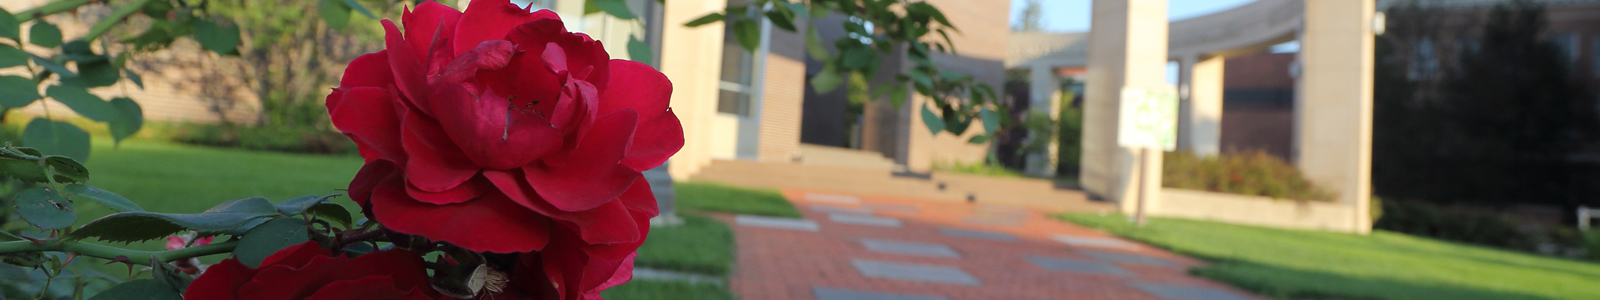 A rose blooming in UNI's Memorial Garden